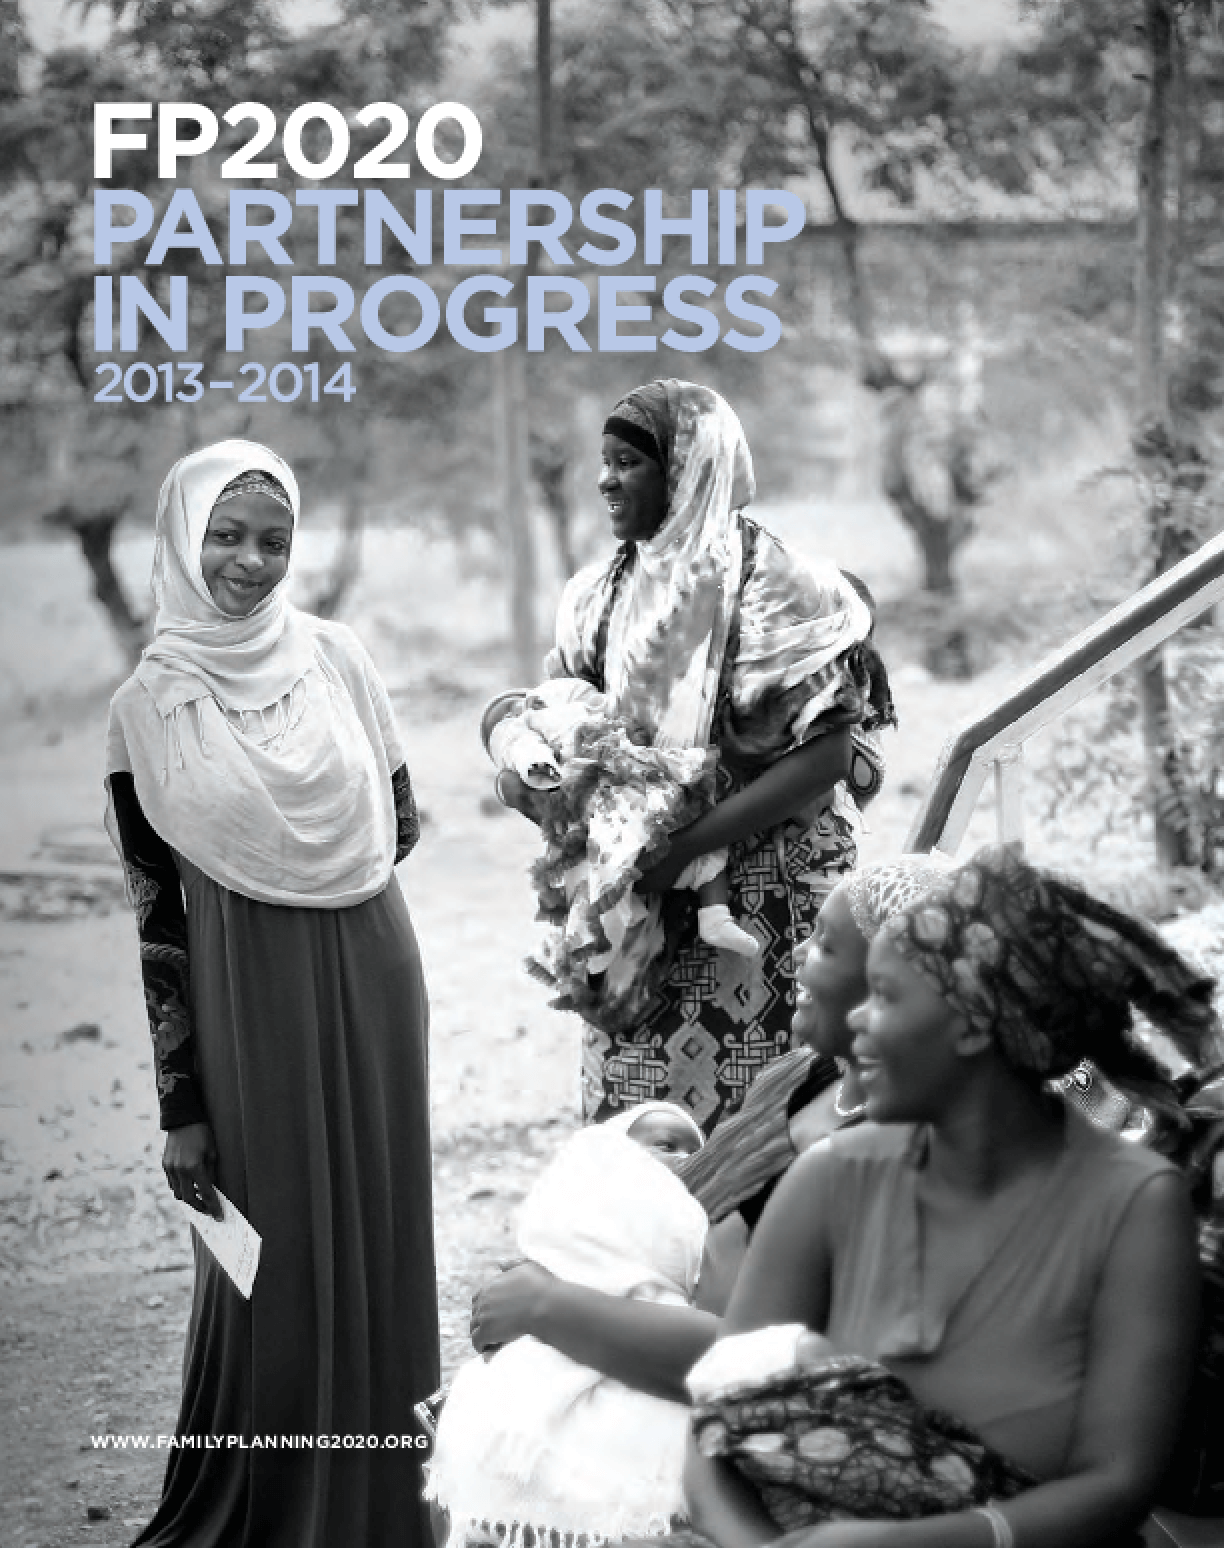 FP2020: Partnership in Progress 2013-2014